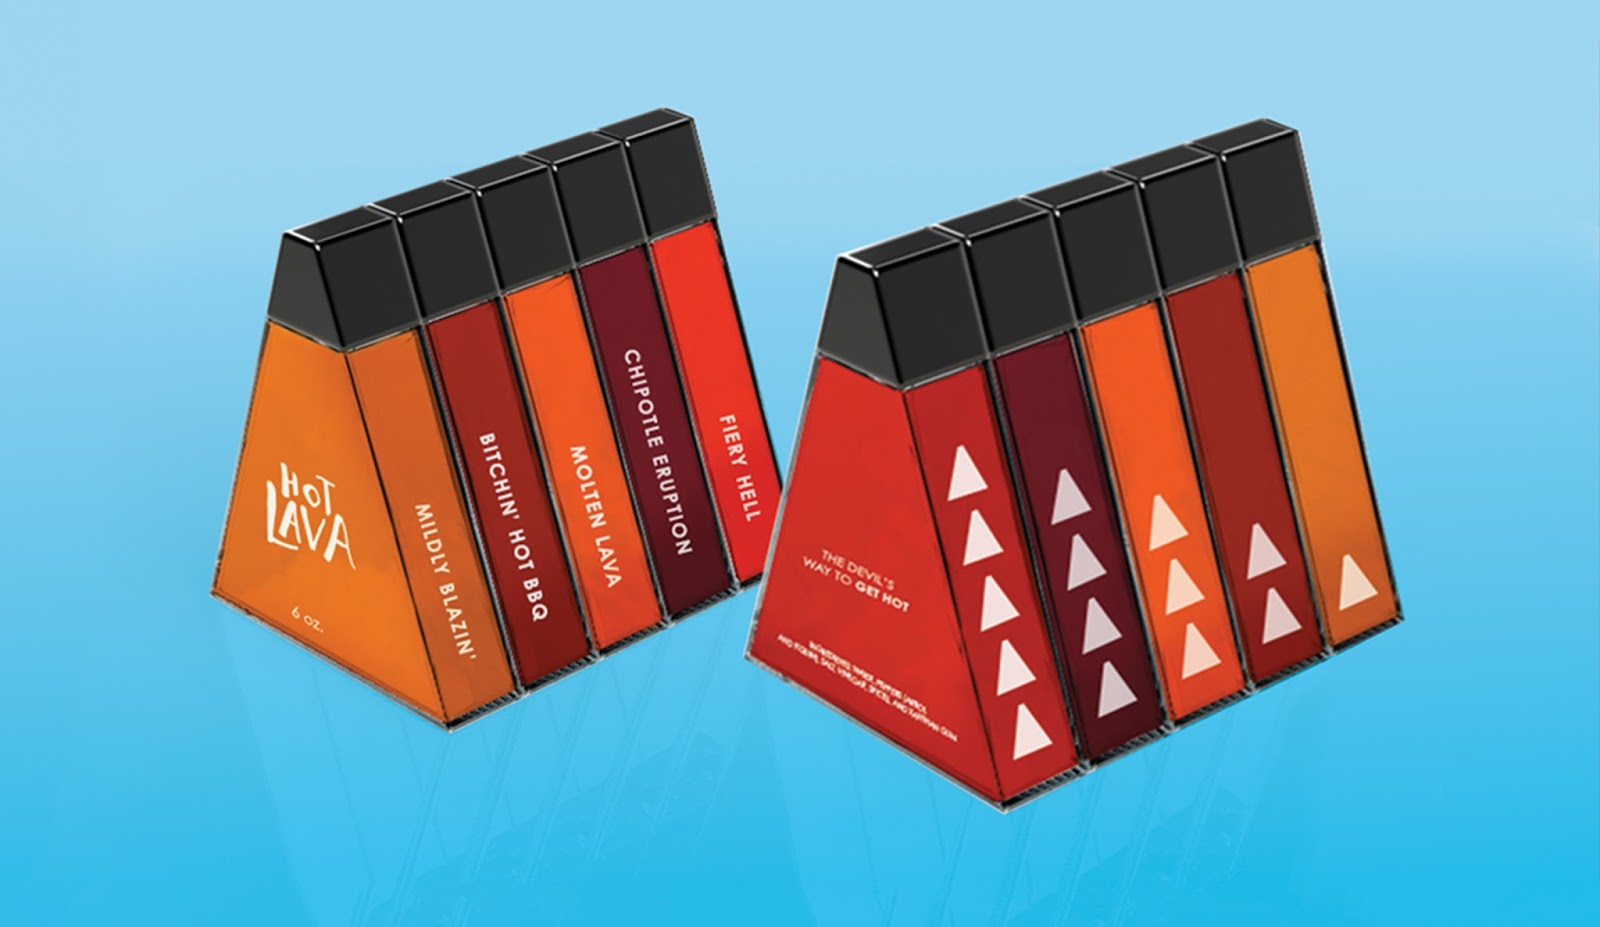 Hot Lava Spice Packaging Designed By Erica Buki